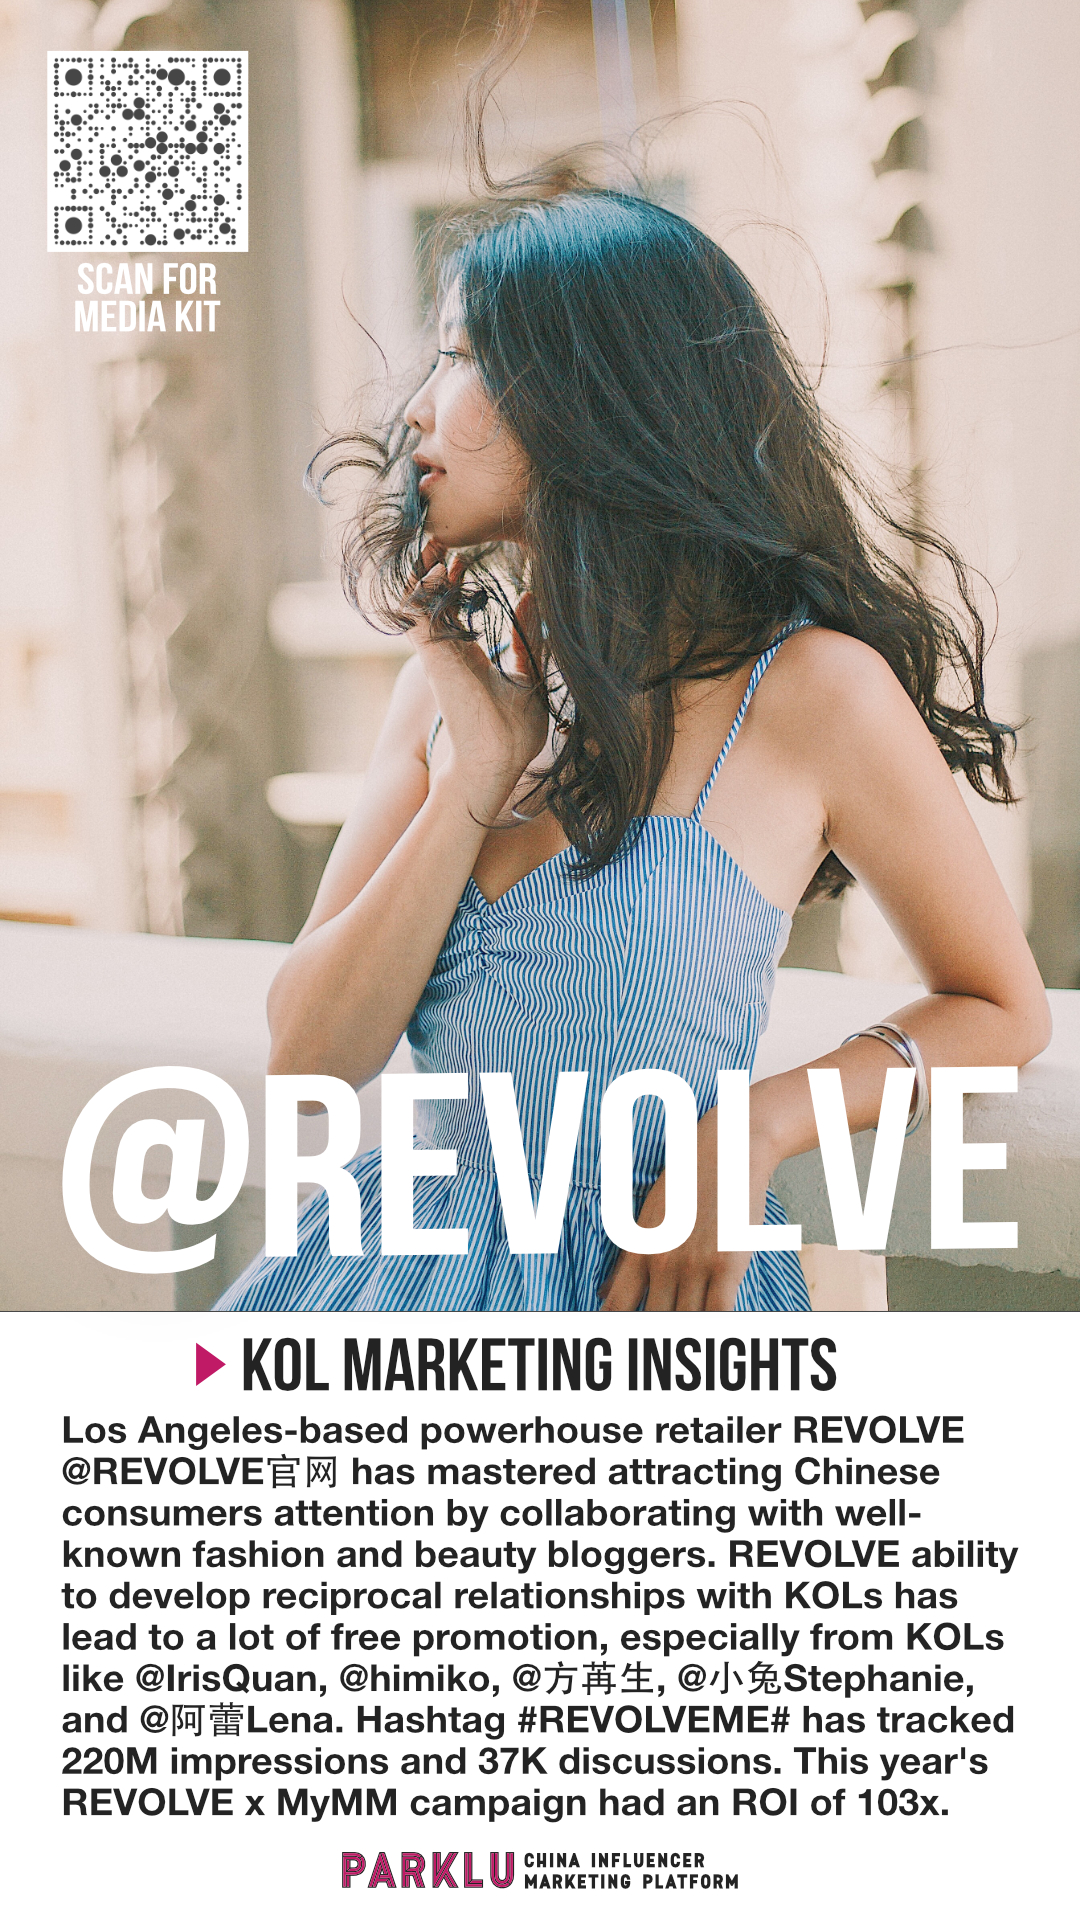 REVOLVE Masters China Consumer Attention with Bloggers